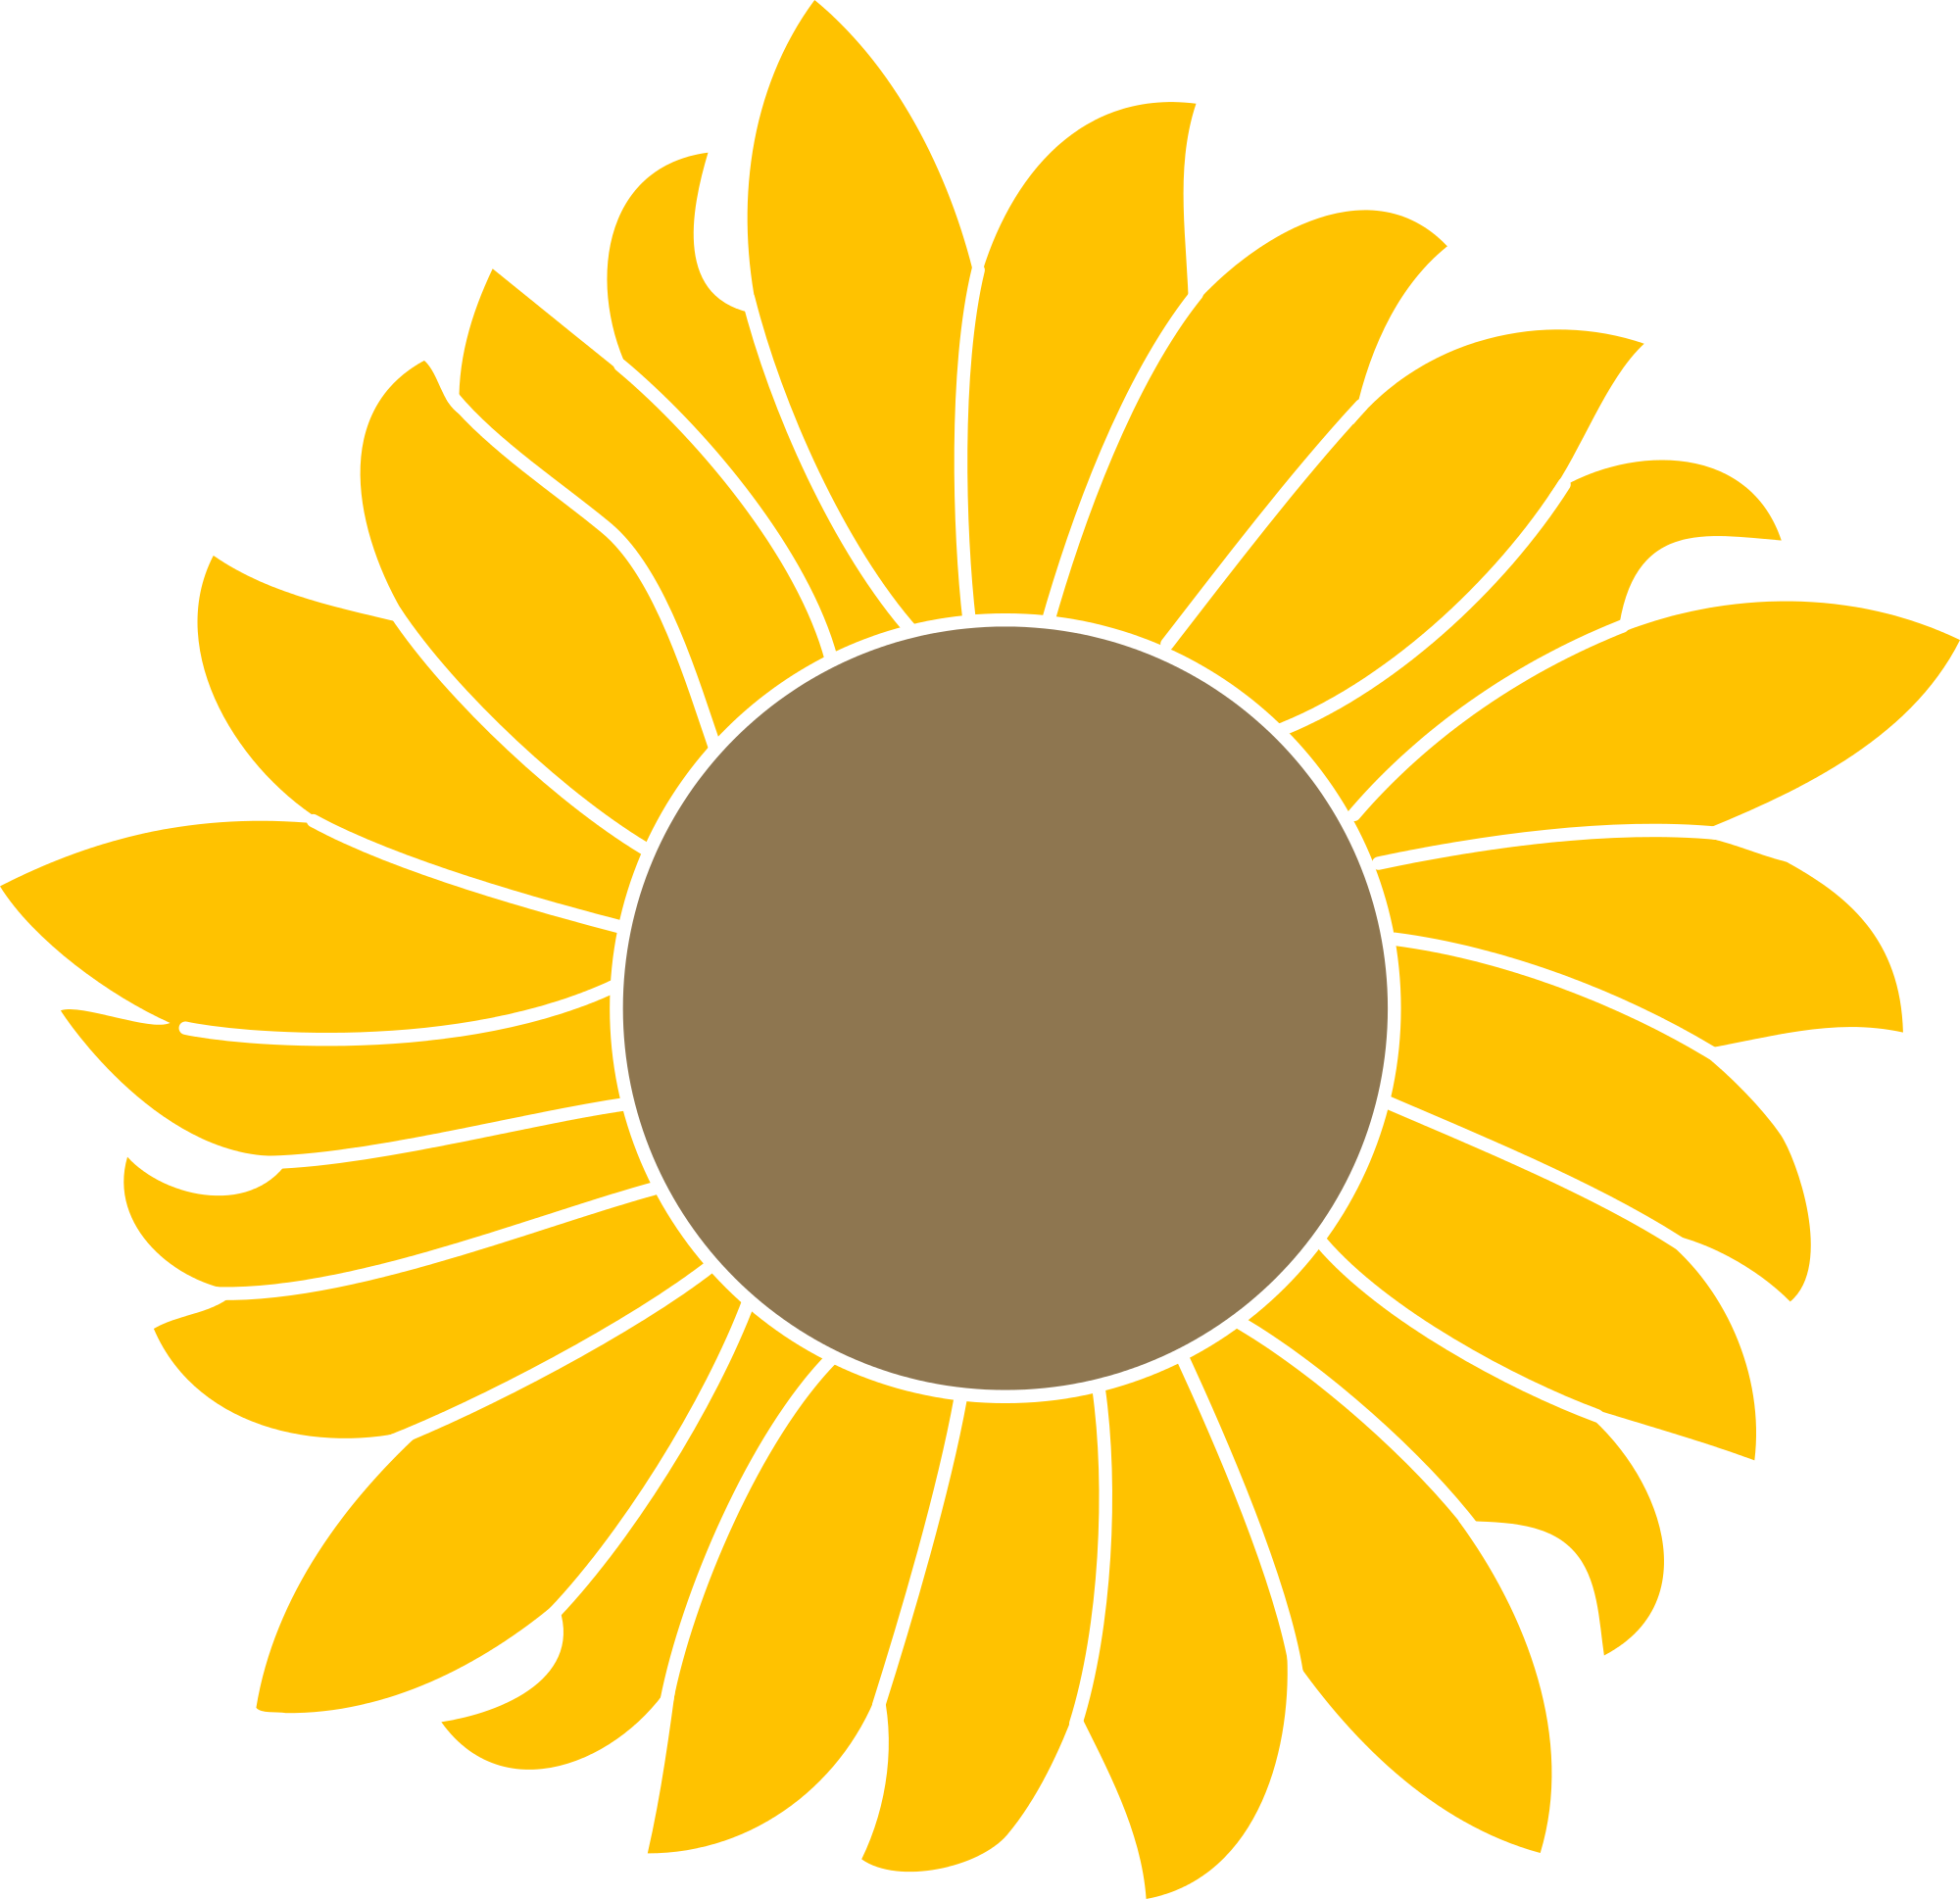 Sunflower clipart vector svg black and white stock Common sunflower Scalable Vector Graphics Portable Network ... svg black and white stock